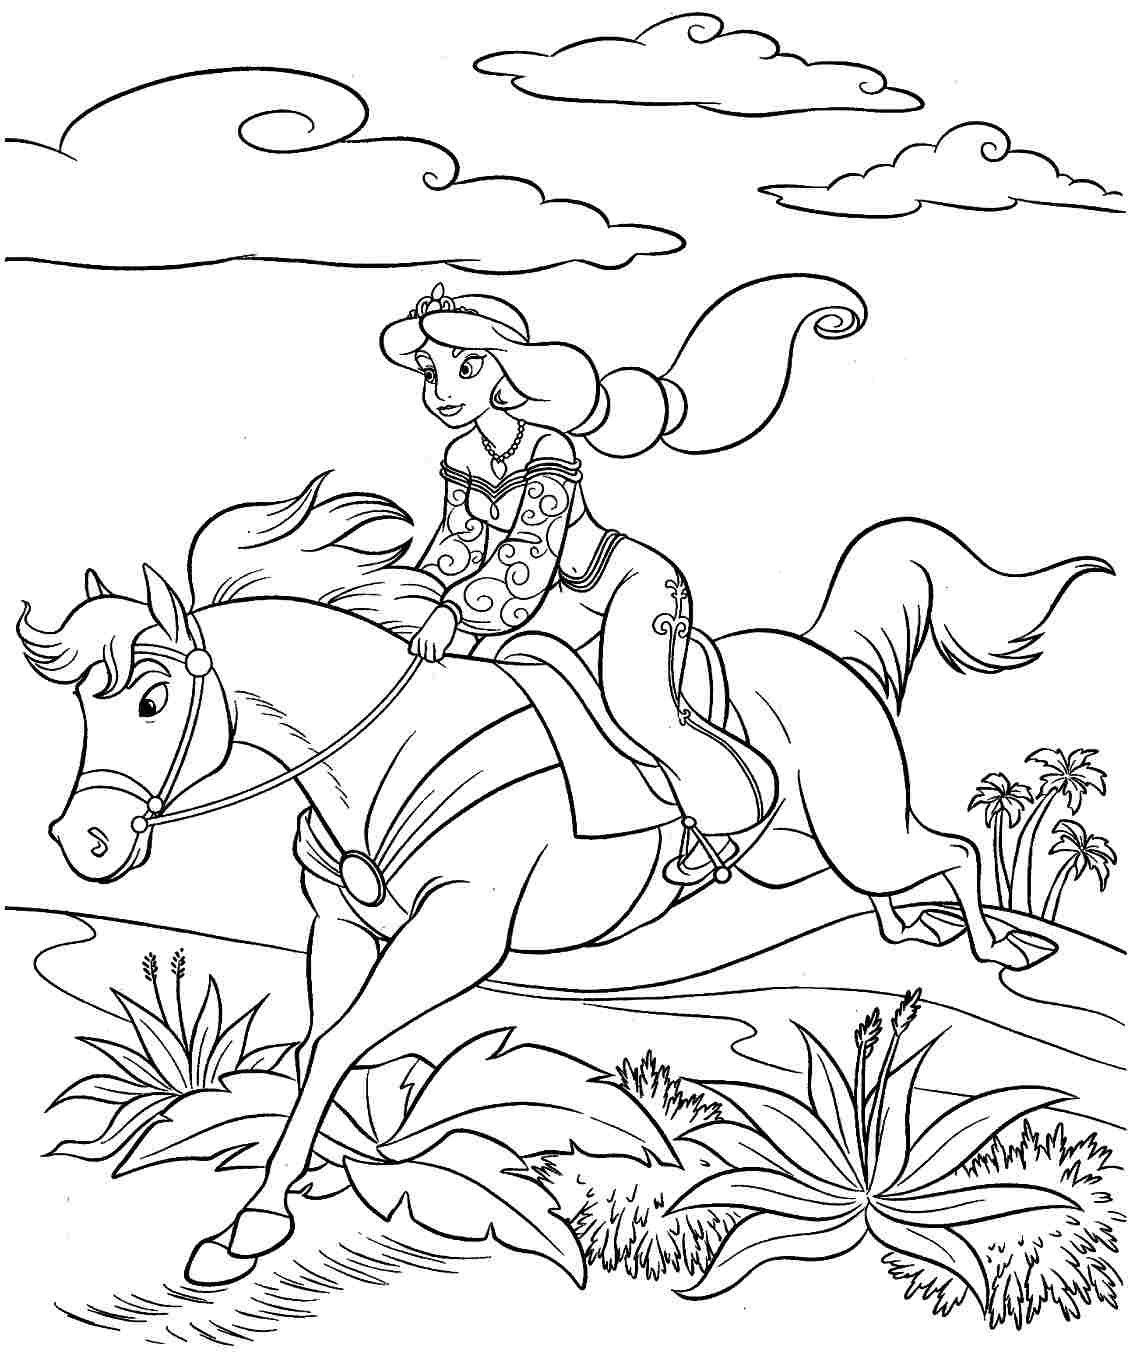 Princess Riding A Horse Coloring Pages From The Thousand Pictures On The Web About Princes Horse Coloring Pages Princess Coloring Pages Disney Coloring Pages [ 1358 x 1133 Pixel ]